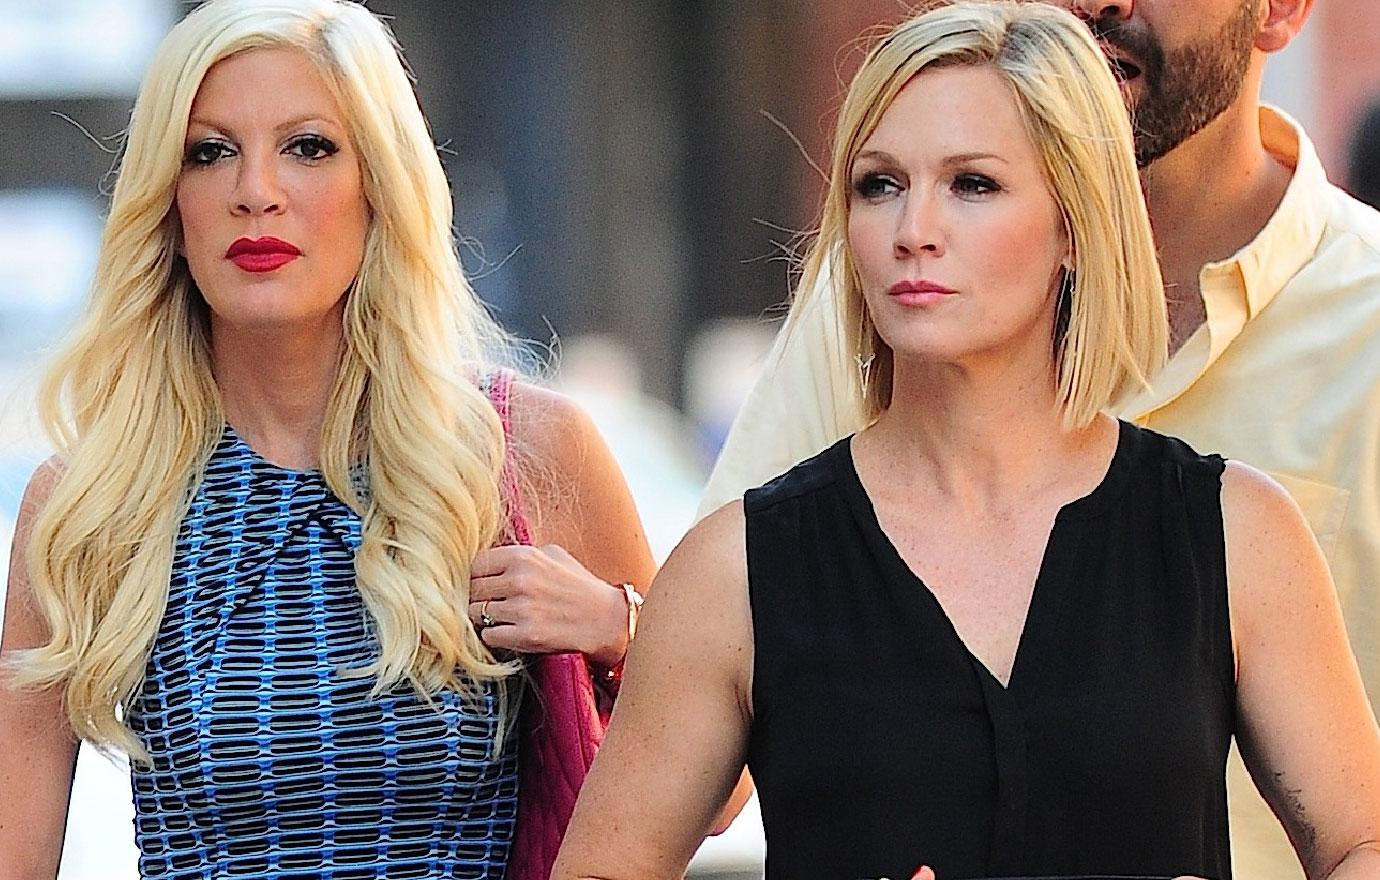 Tori Spelling Returning To Work With Jennie Garth After Meltdowns